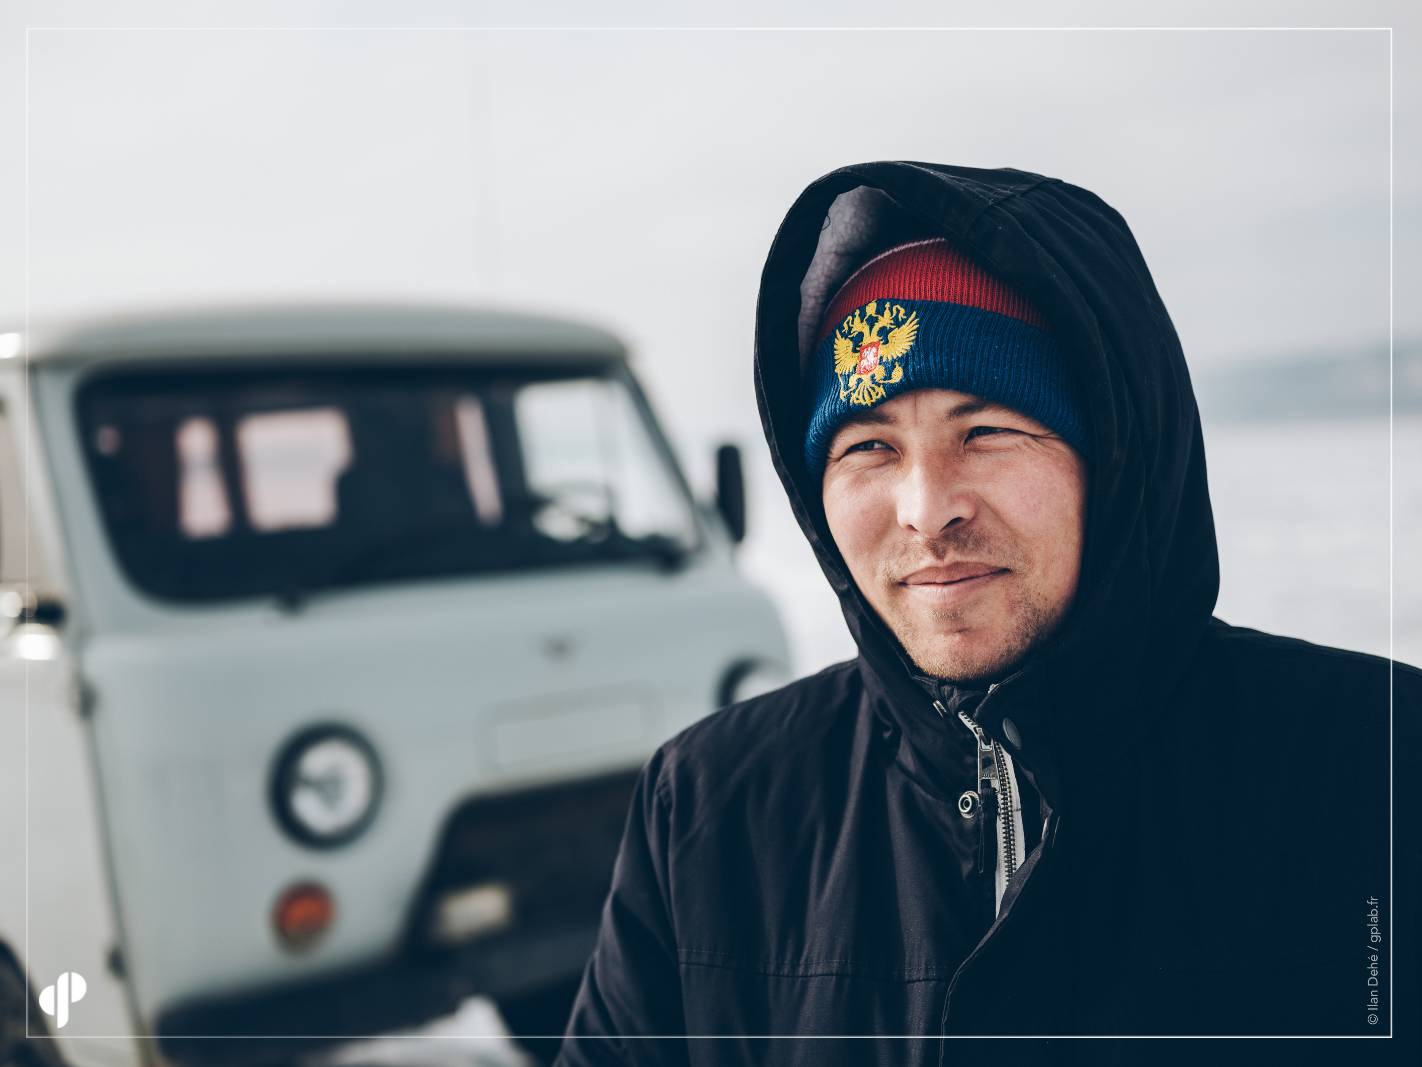 Le conducteur du UAZ 4x4 sovietique